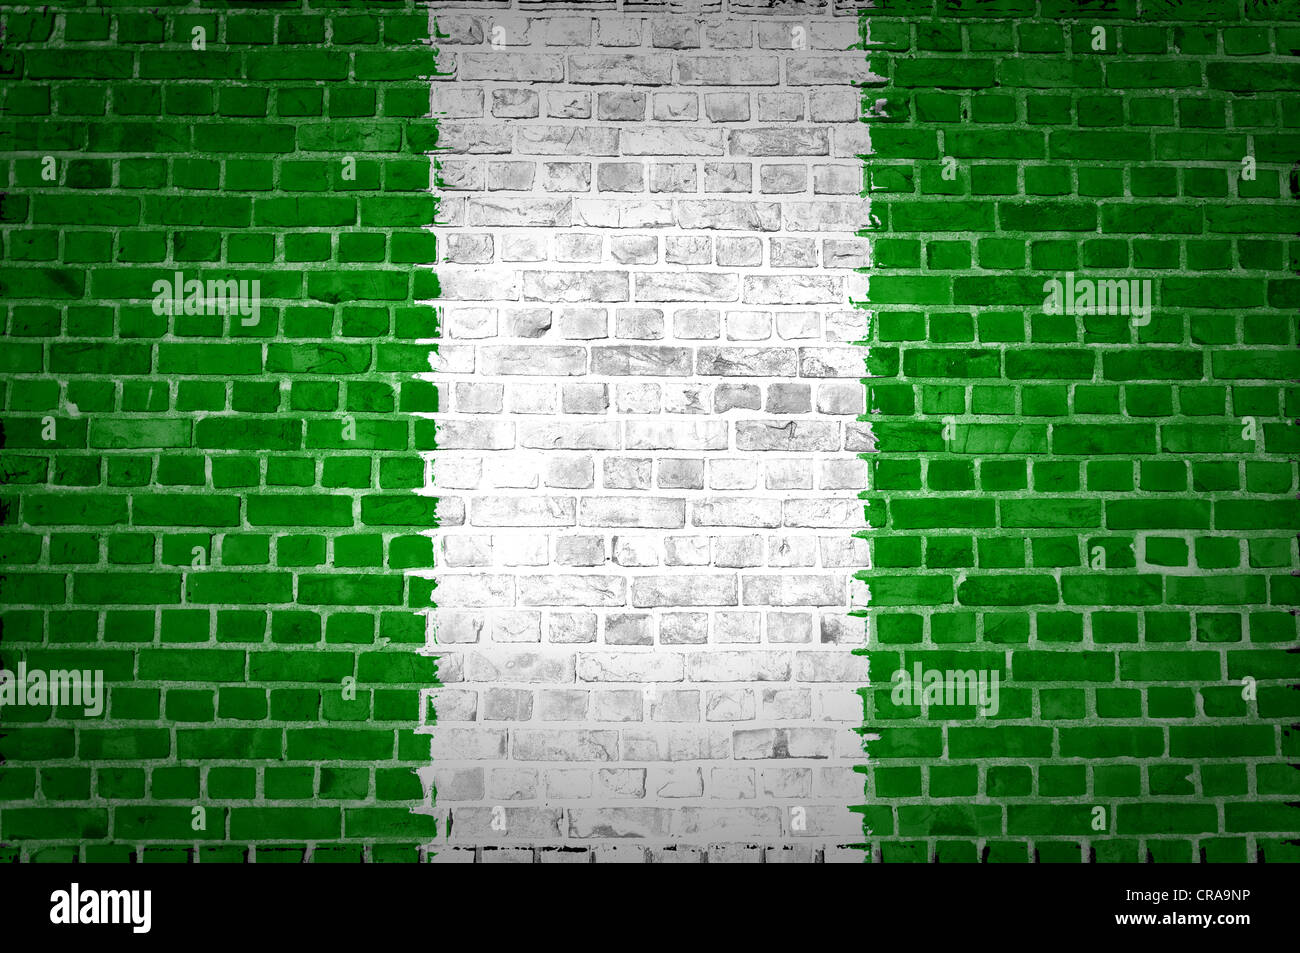 An image of the Nigeria flag painted on a brick wall in an urban location - Stock Image